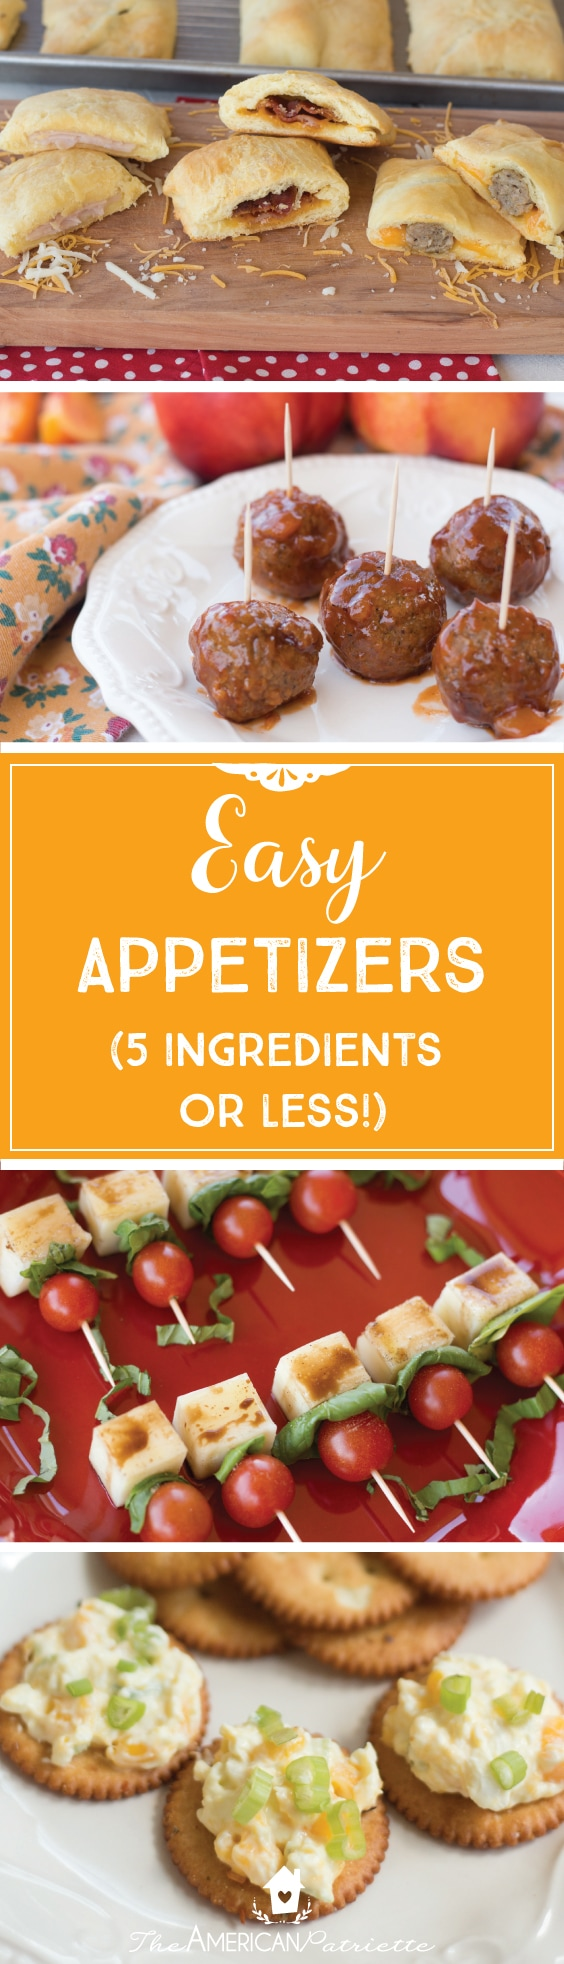 Easy Appetizer Ideas (5 Ingredients or Less!)